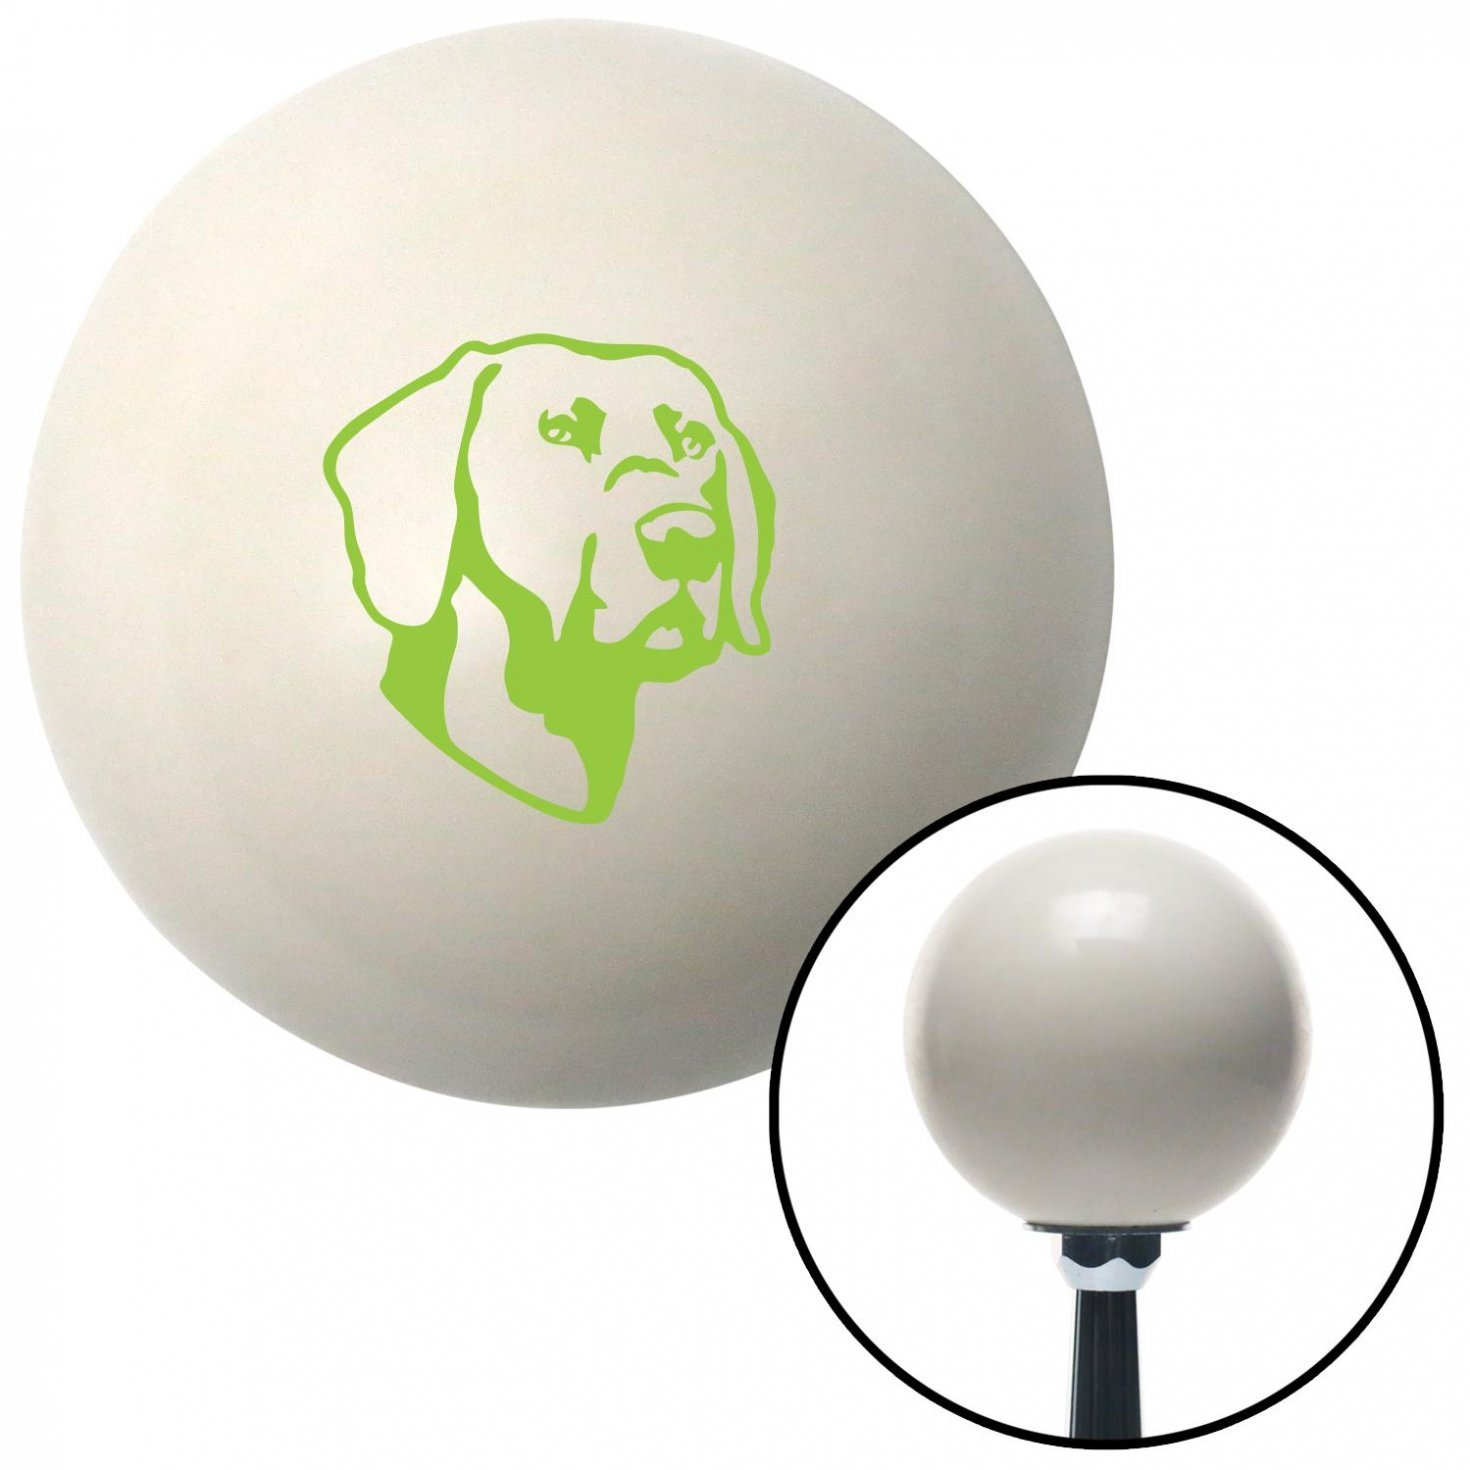 American Shifter 41140 Ivory Shift Knob with 16mm x 1.5 Insert Green Dog